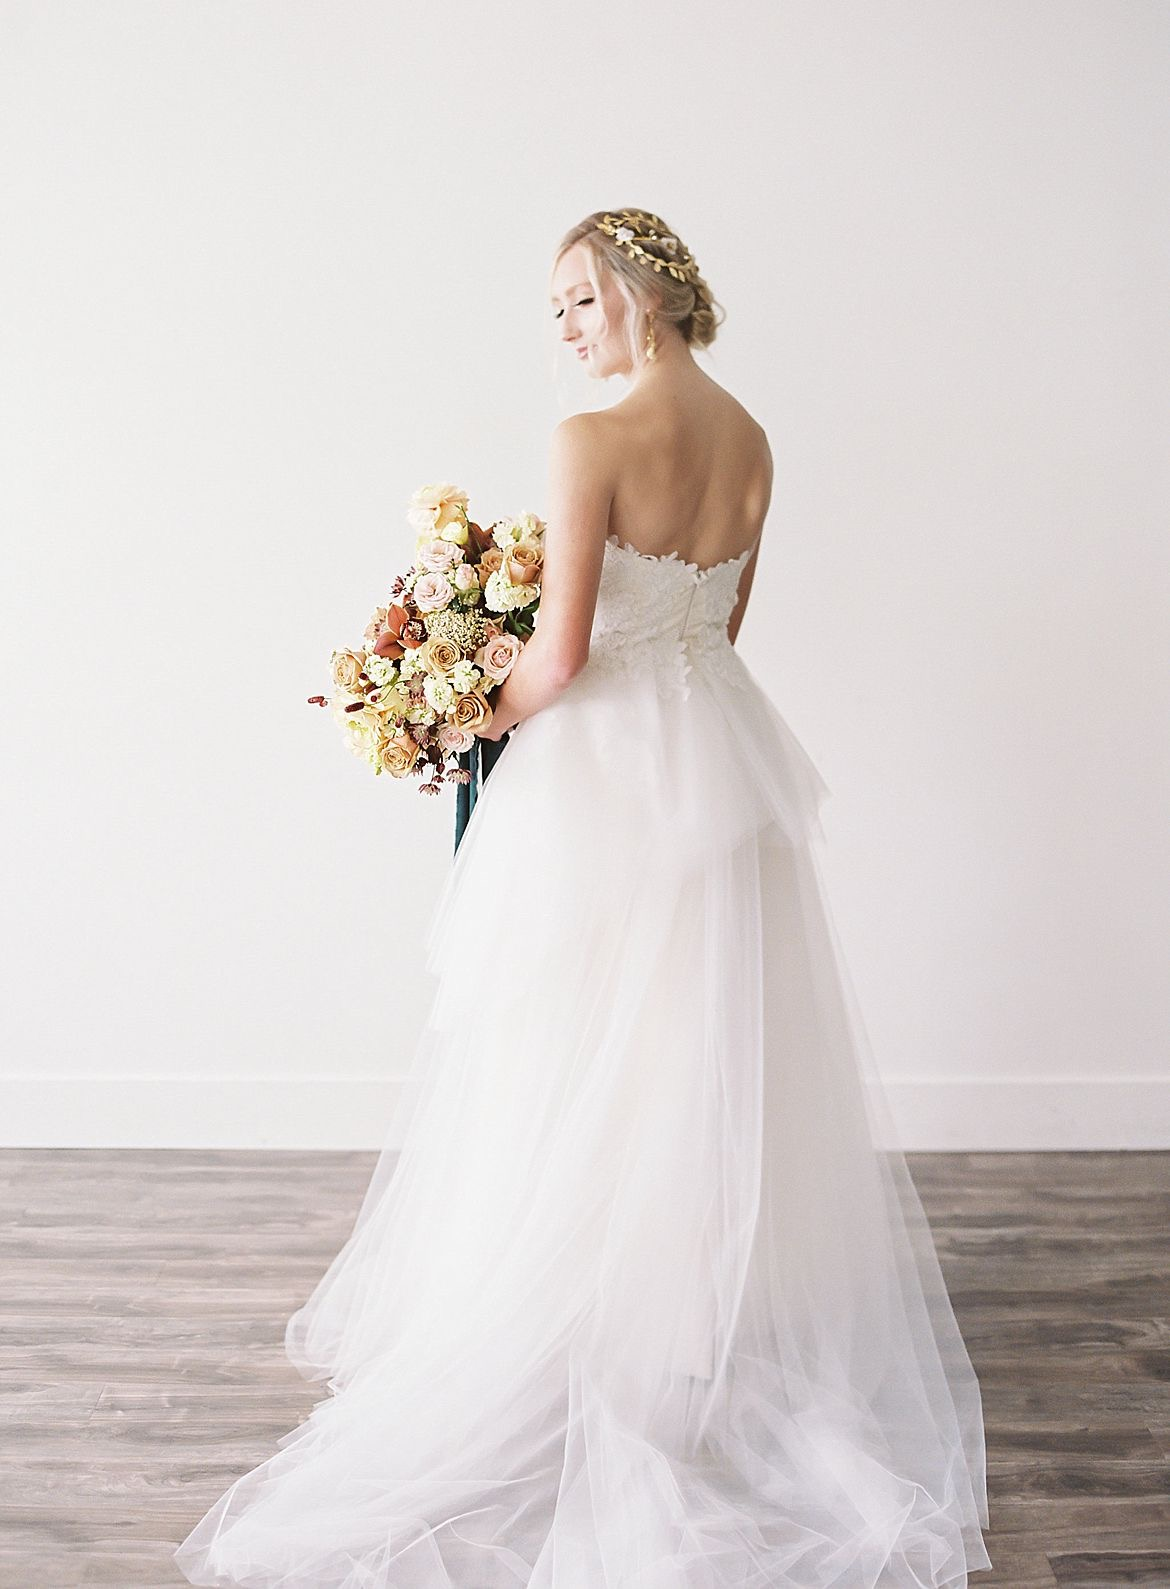 Best Bridal Inspiration Blog